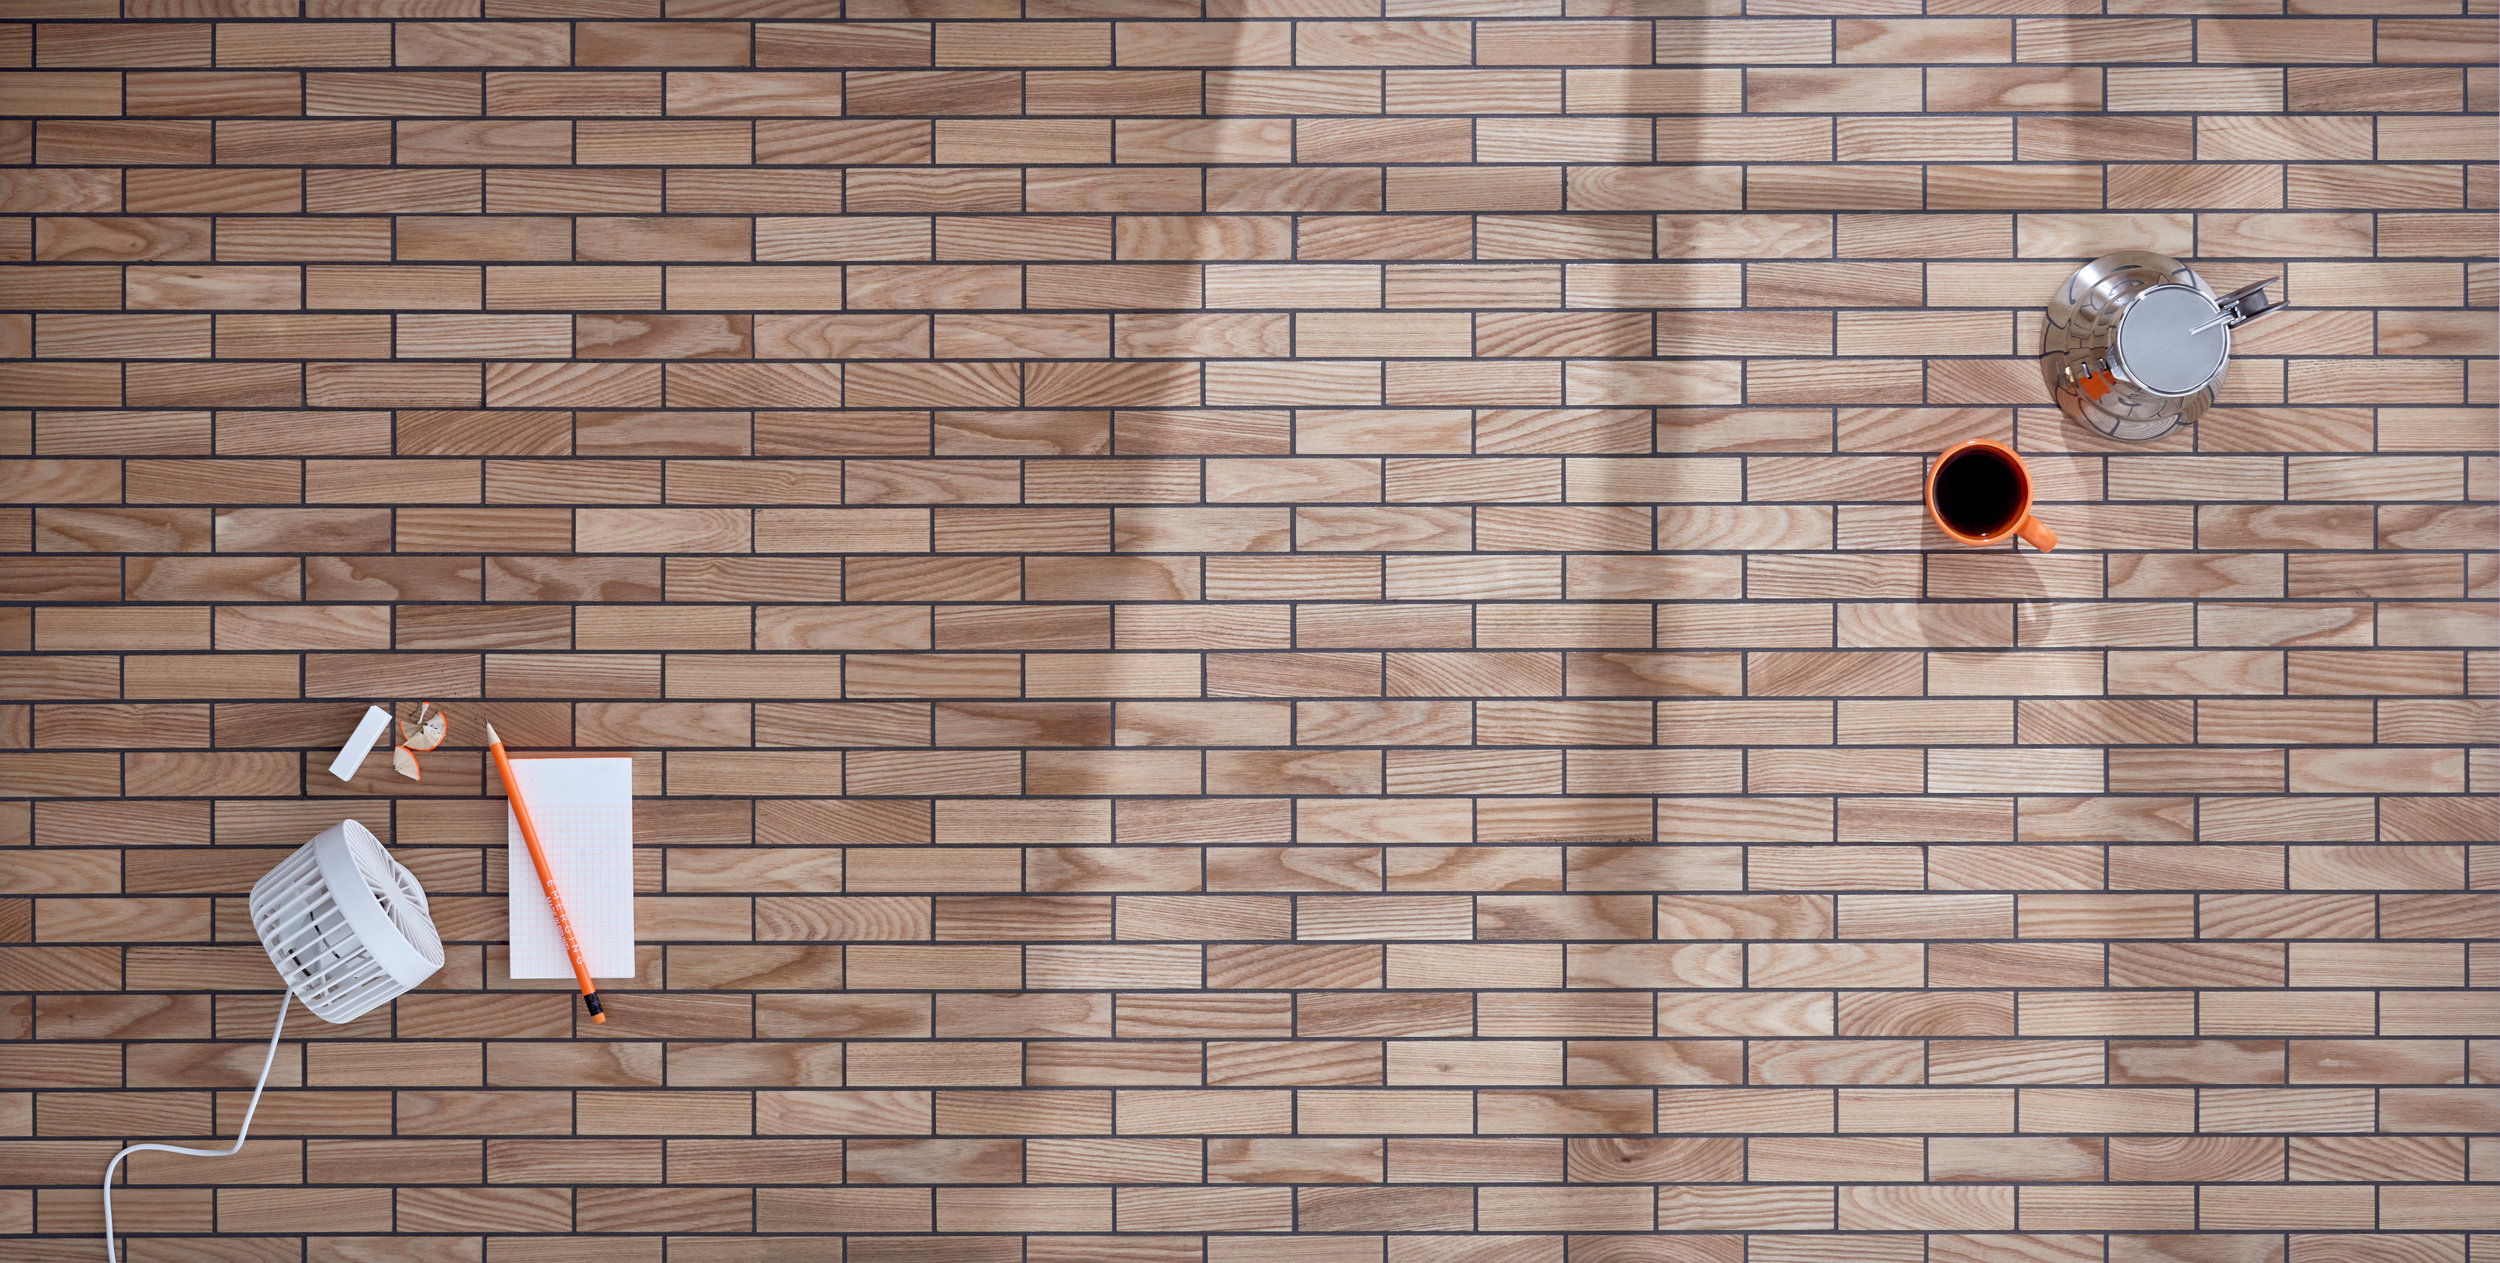 Another-Brand-Mosaico-Stretcher-Offset-Ash-Wood-Tiles-Office-02.jpg